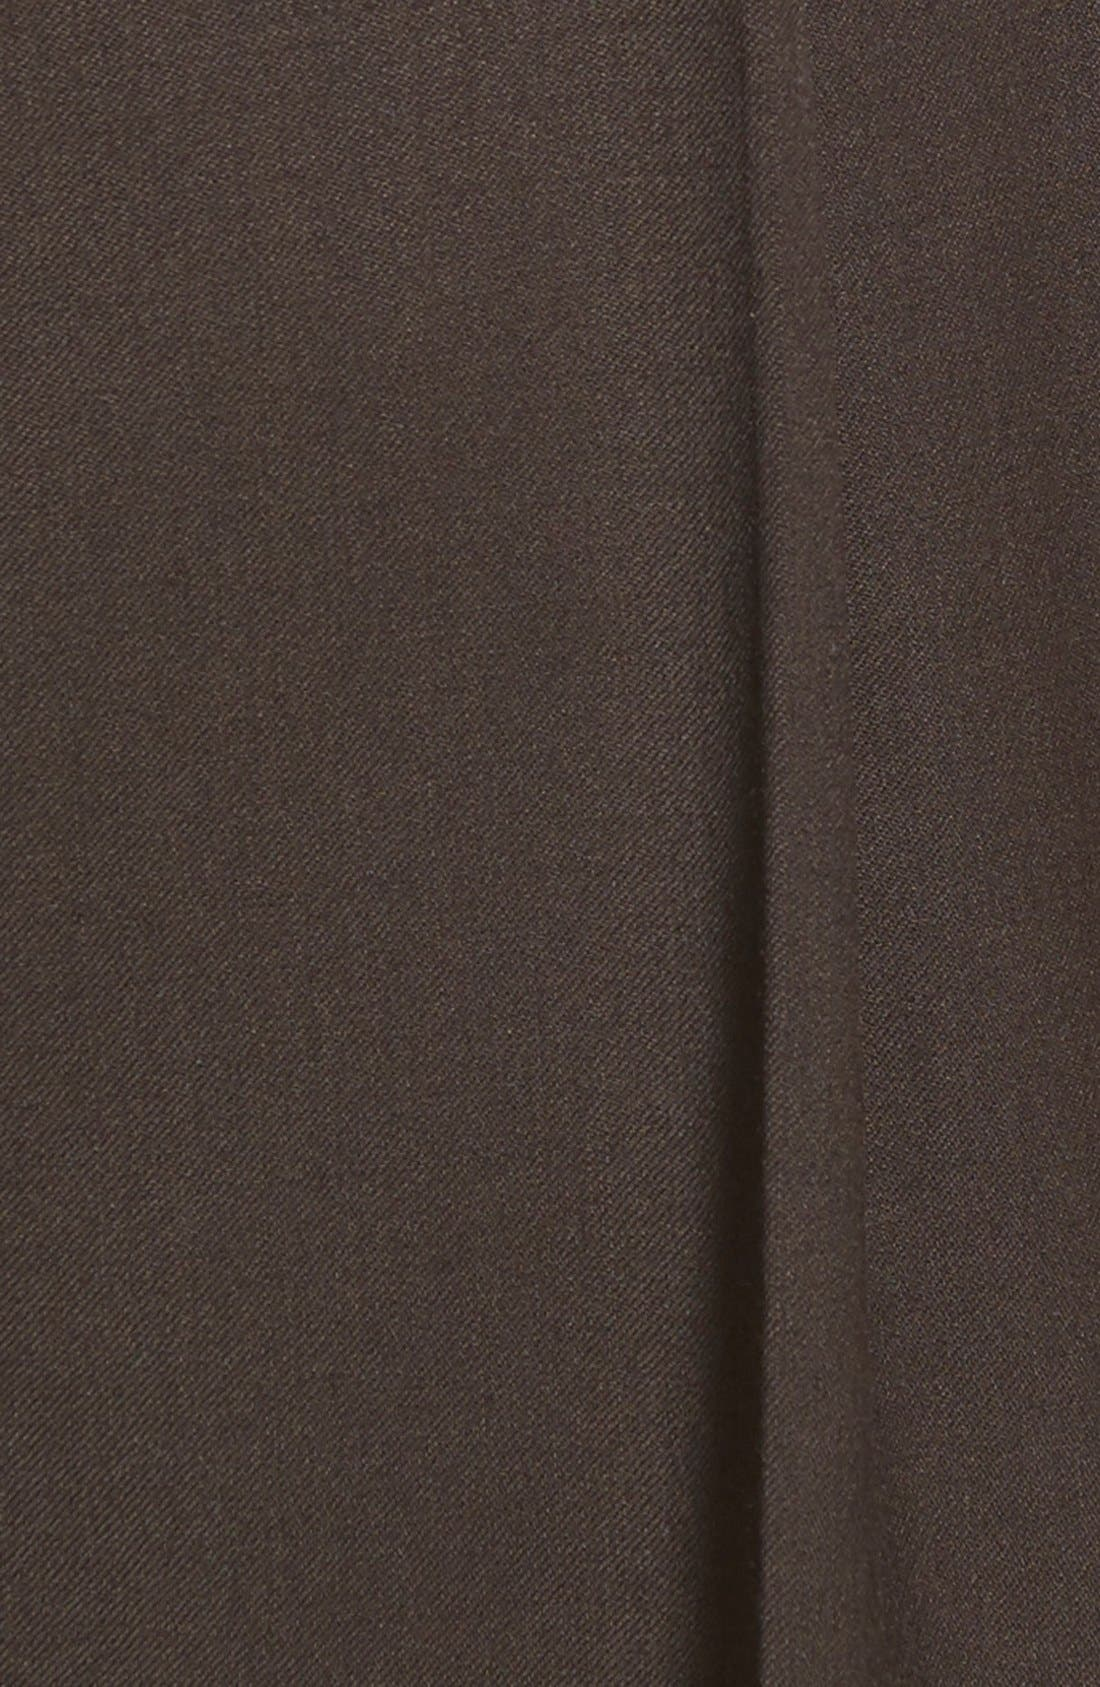 Pleated Solid Wool Trousers,                             Alternate thumbnail 59, color,